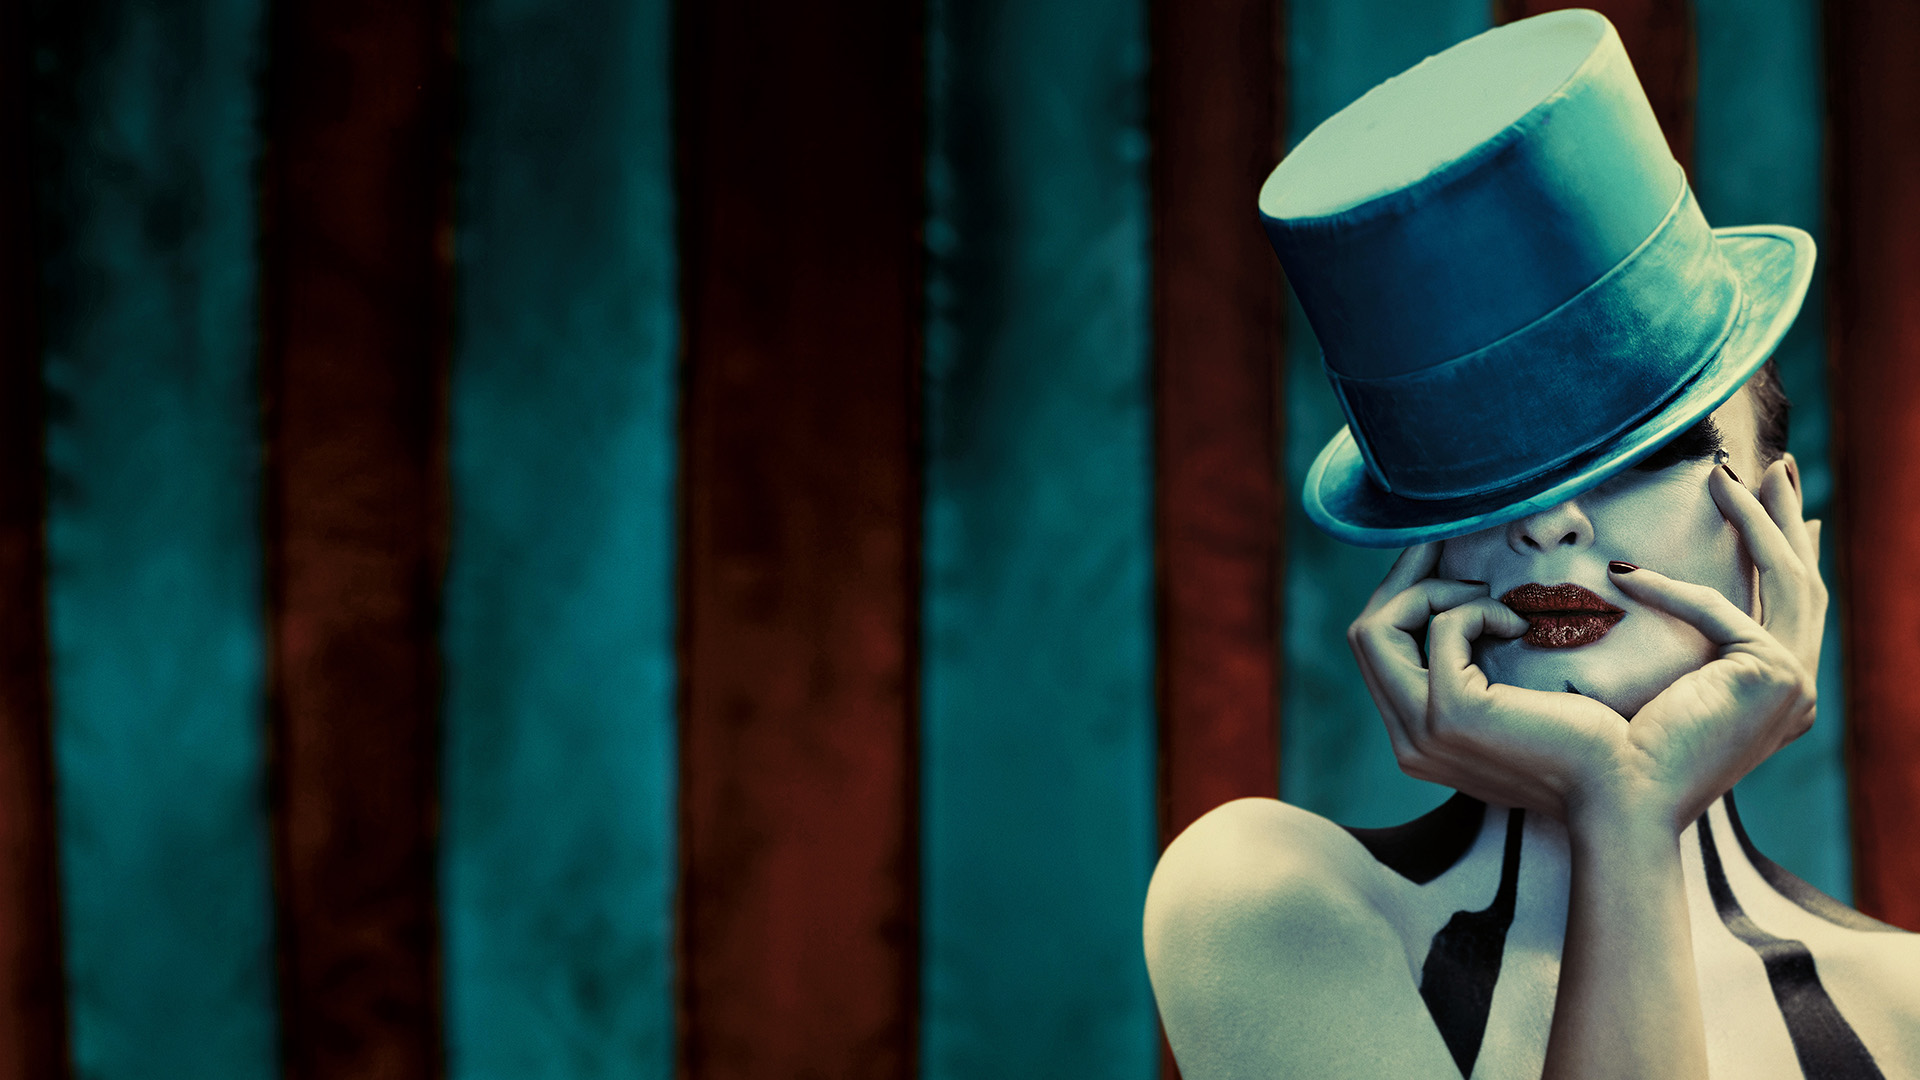 American Horror Story Hd Wallpaper Background Image 1920x1080